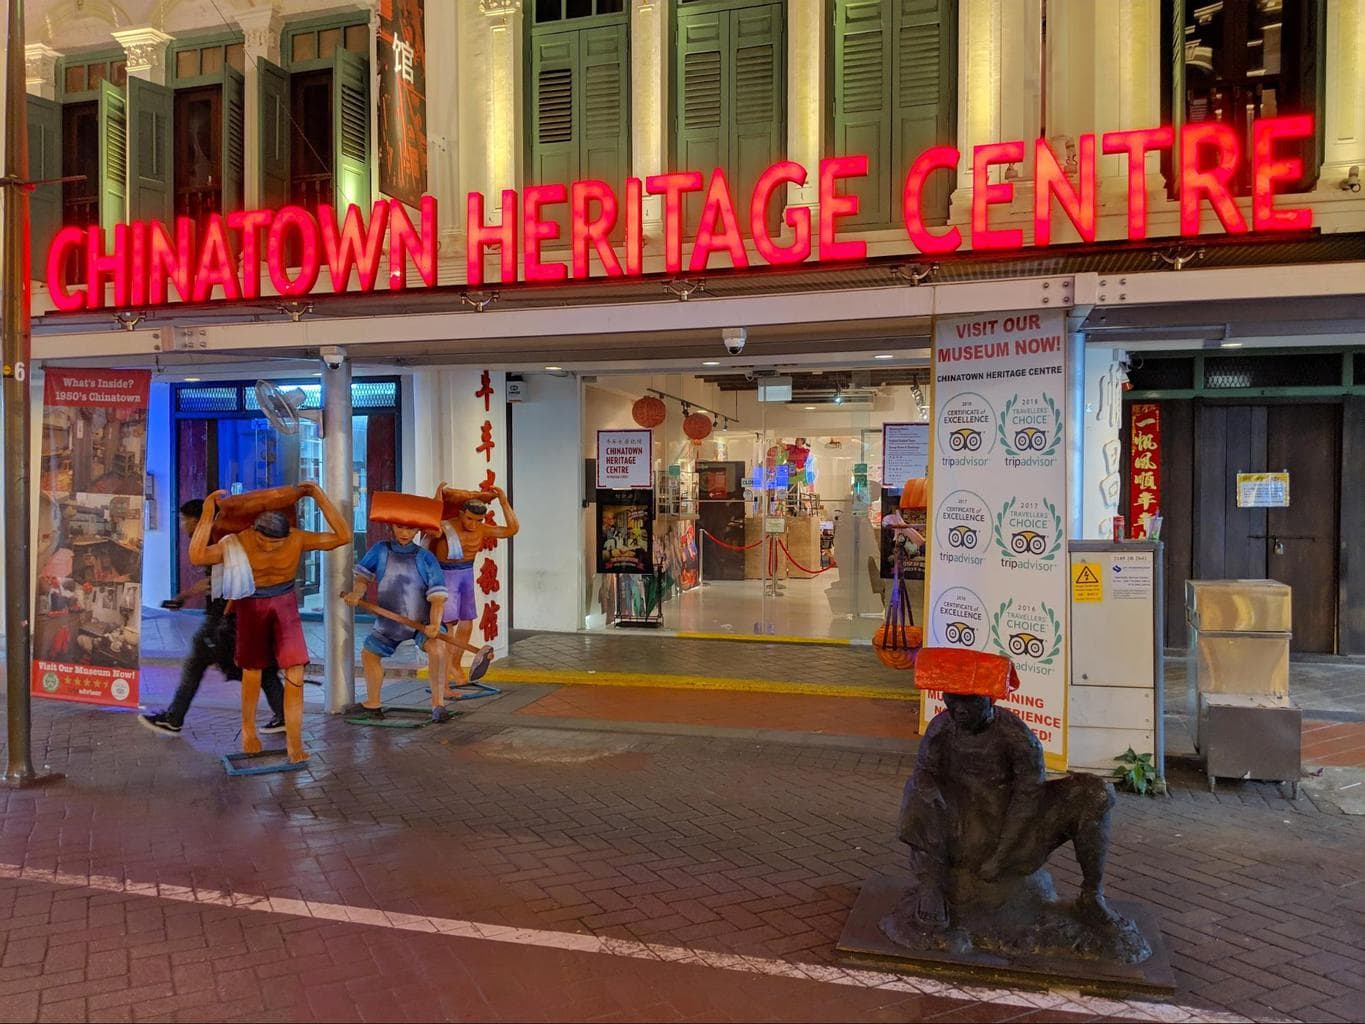 Chinatown Heritage Centre entrance